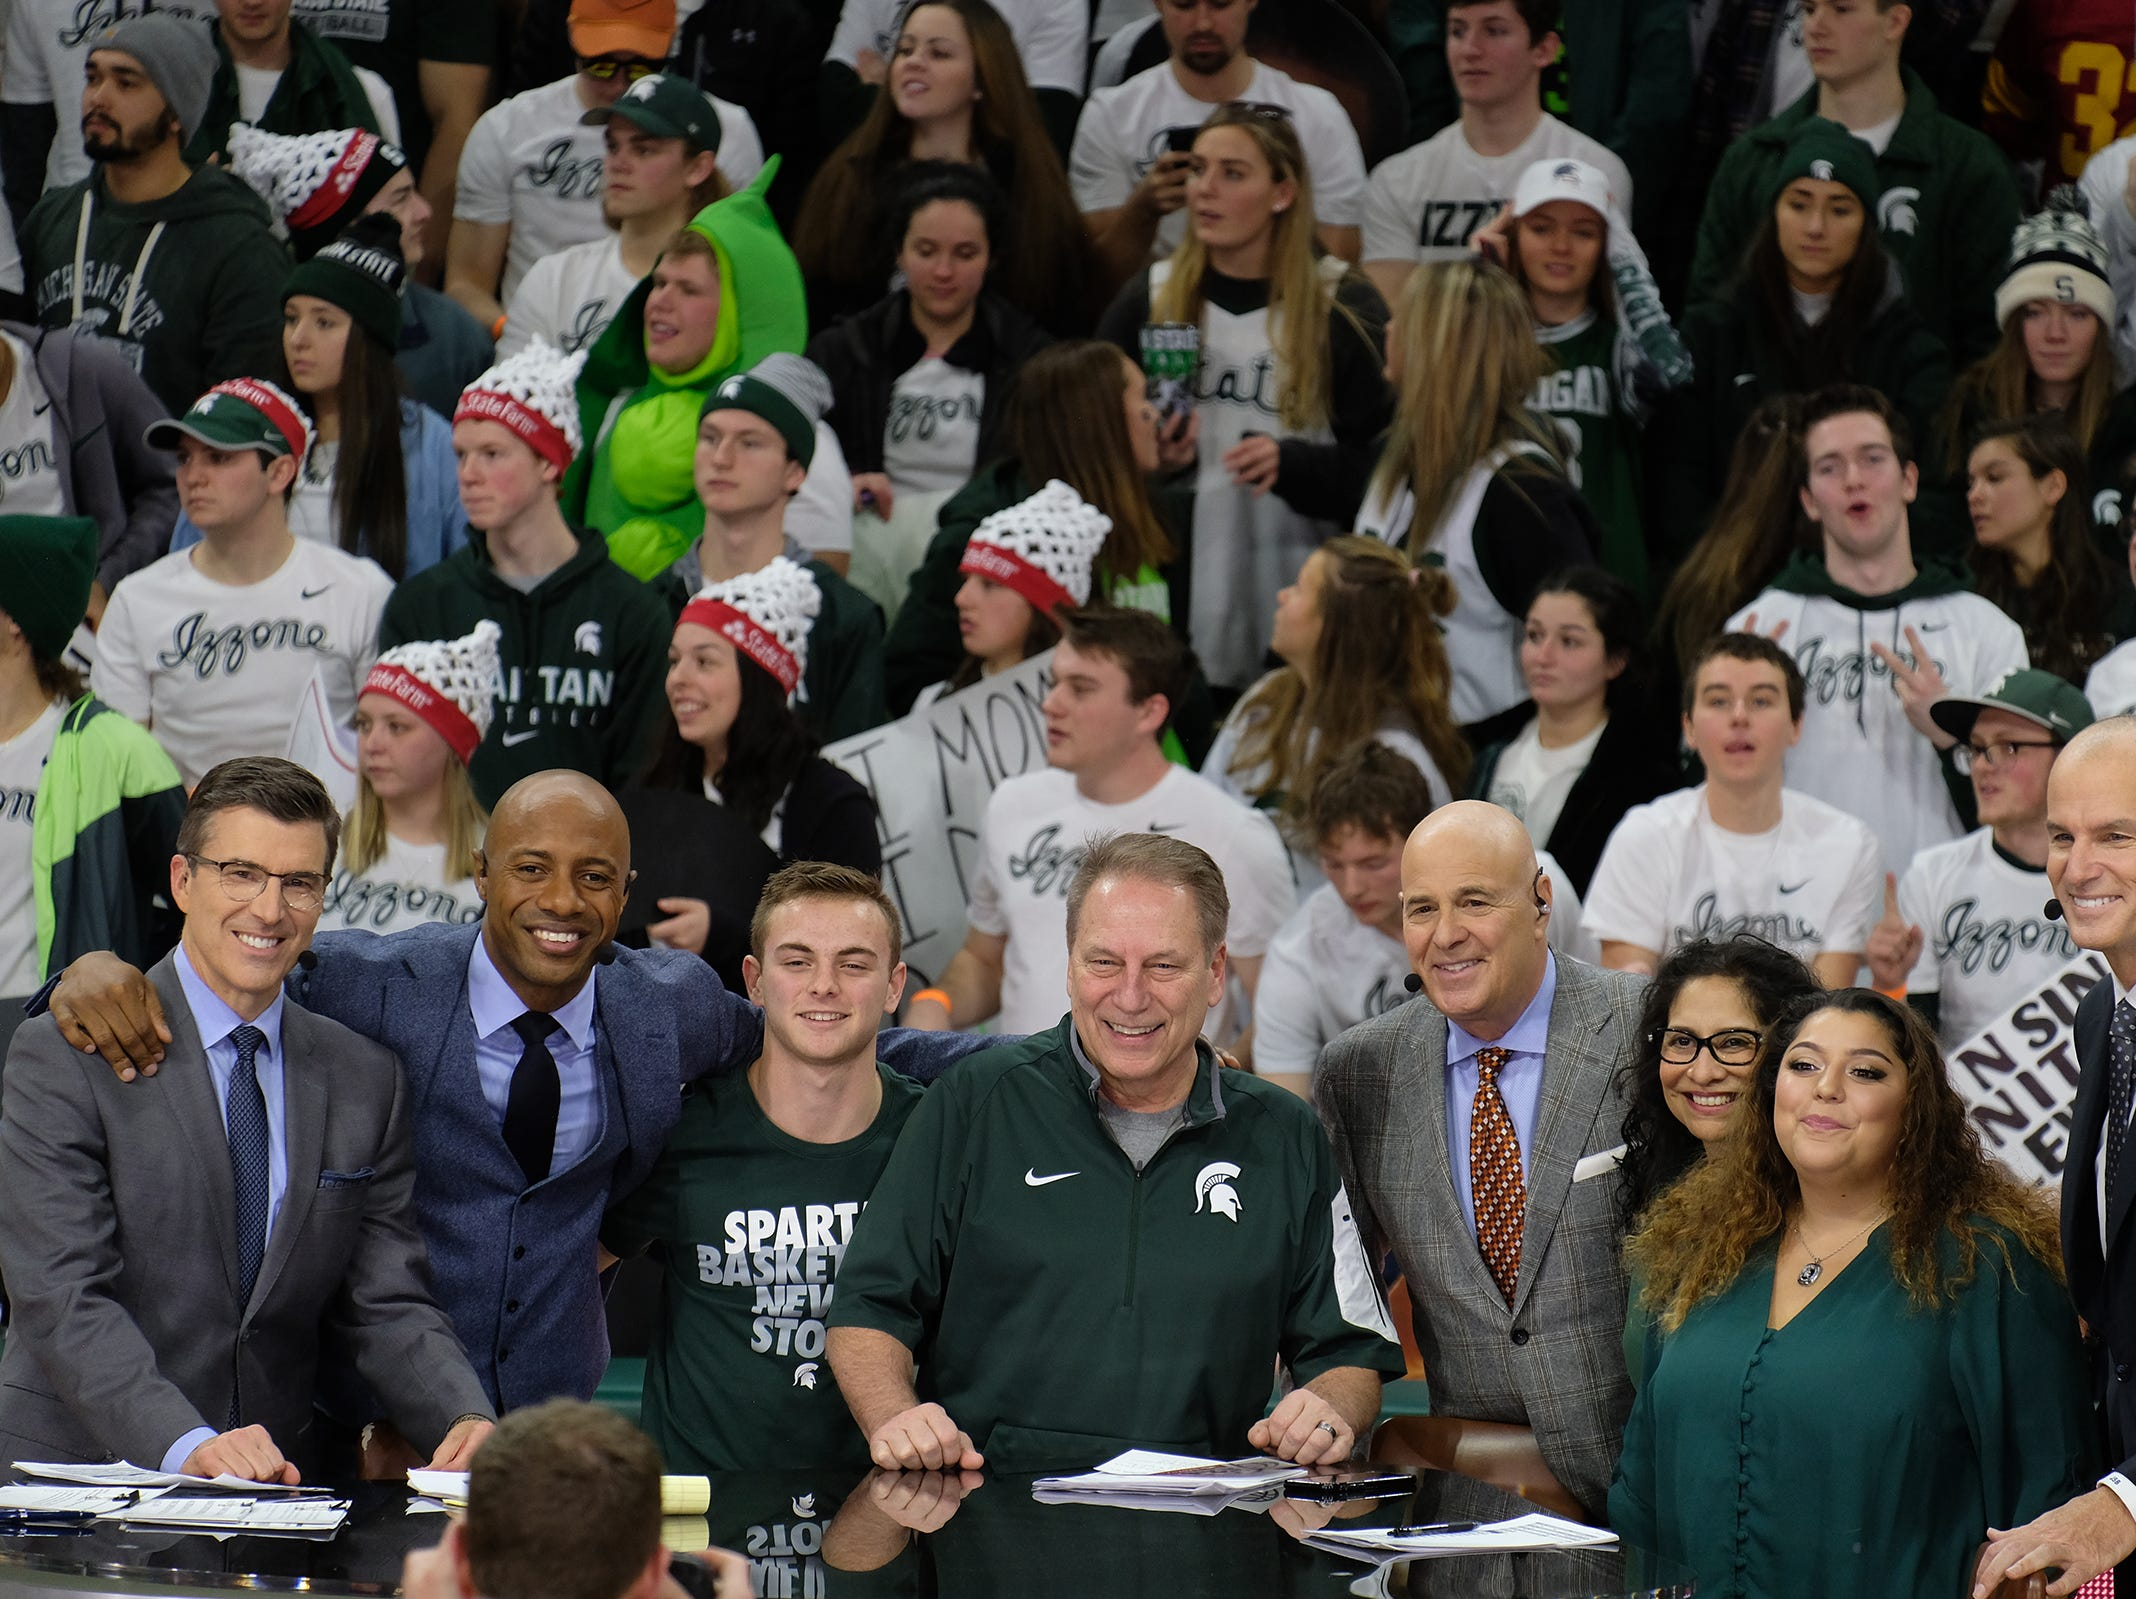 The Izzo family pose for a photo with the ESPN hosts at the Breslin Center Saturday, Feb. 2, 2019.